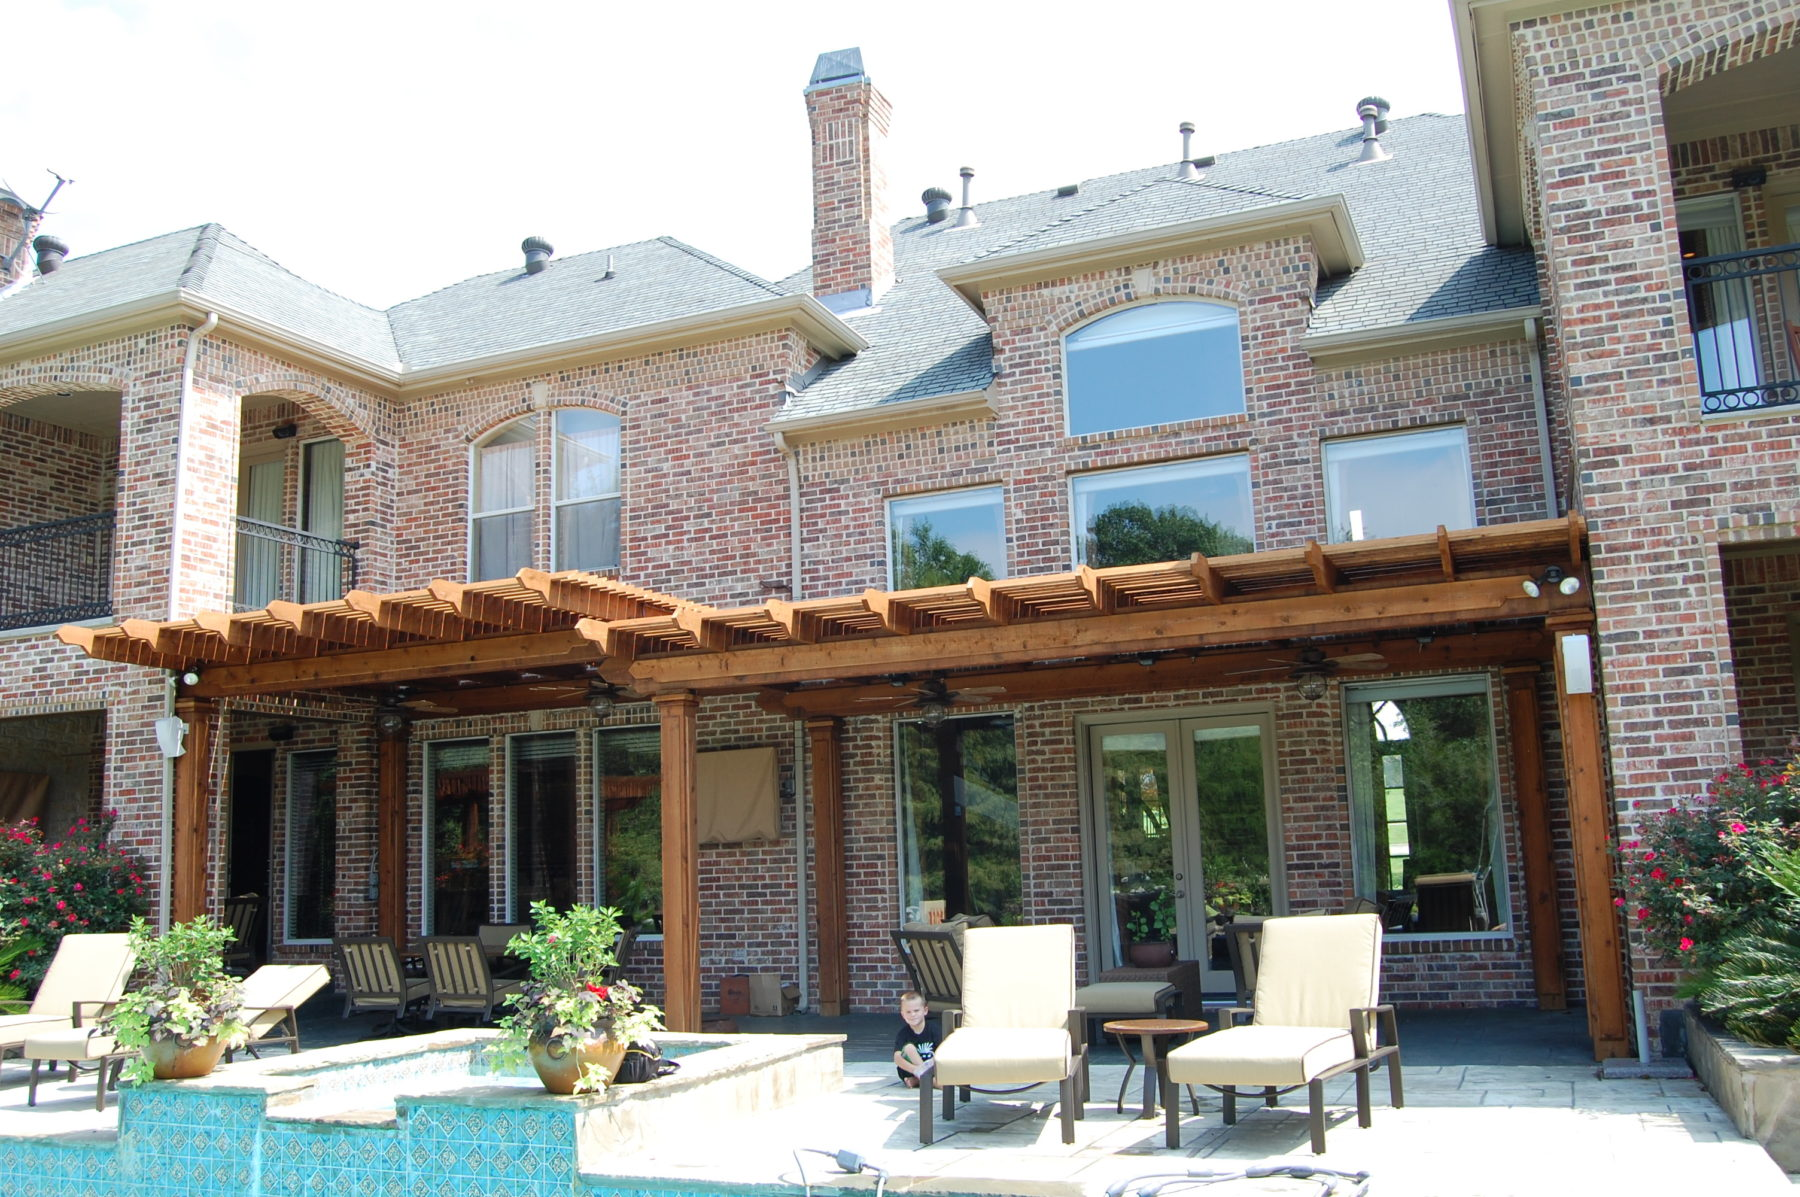 Multi level shade structures custom patio designs forney tx - Smeedijzeren pergola ...